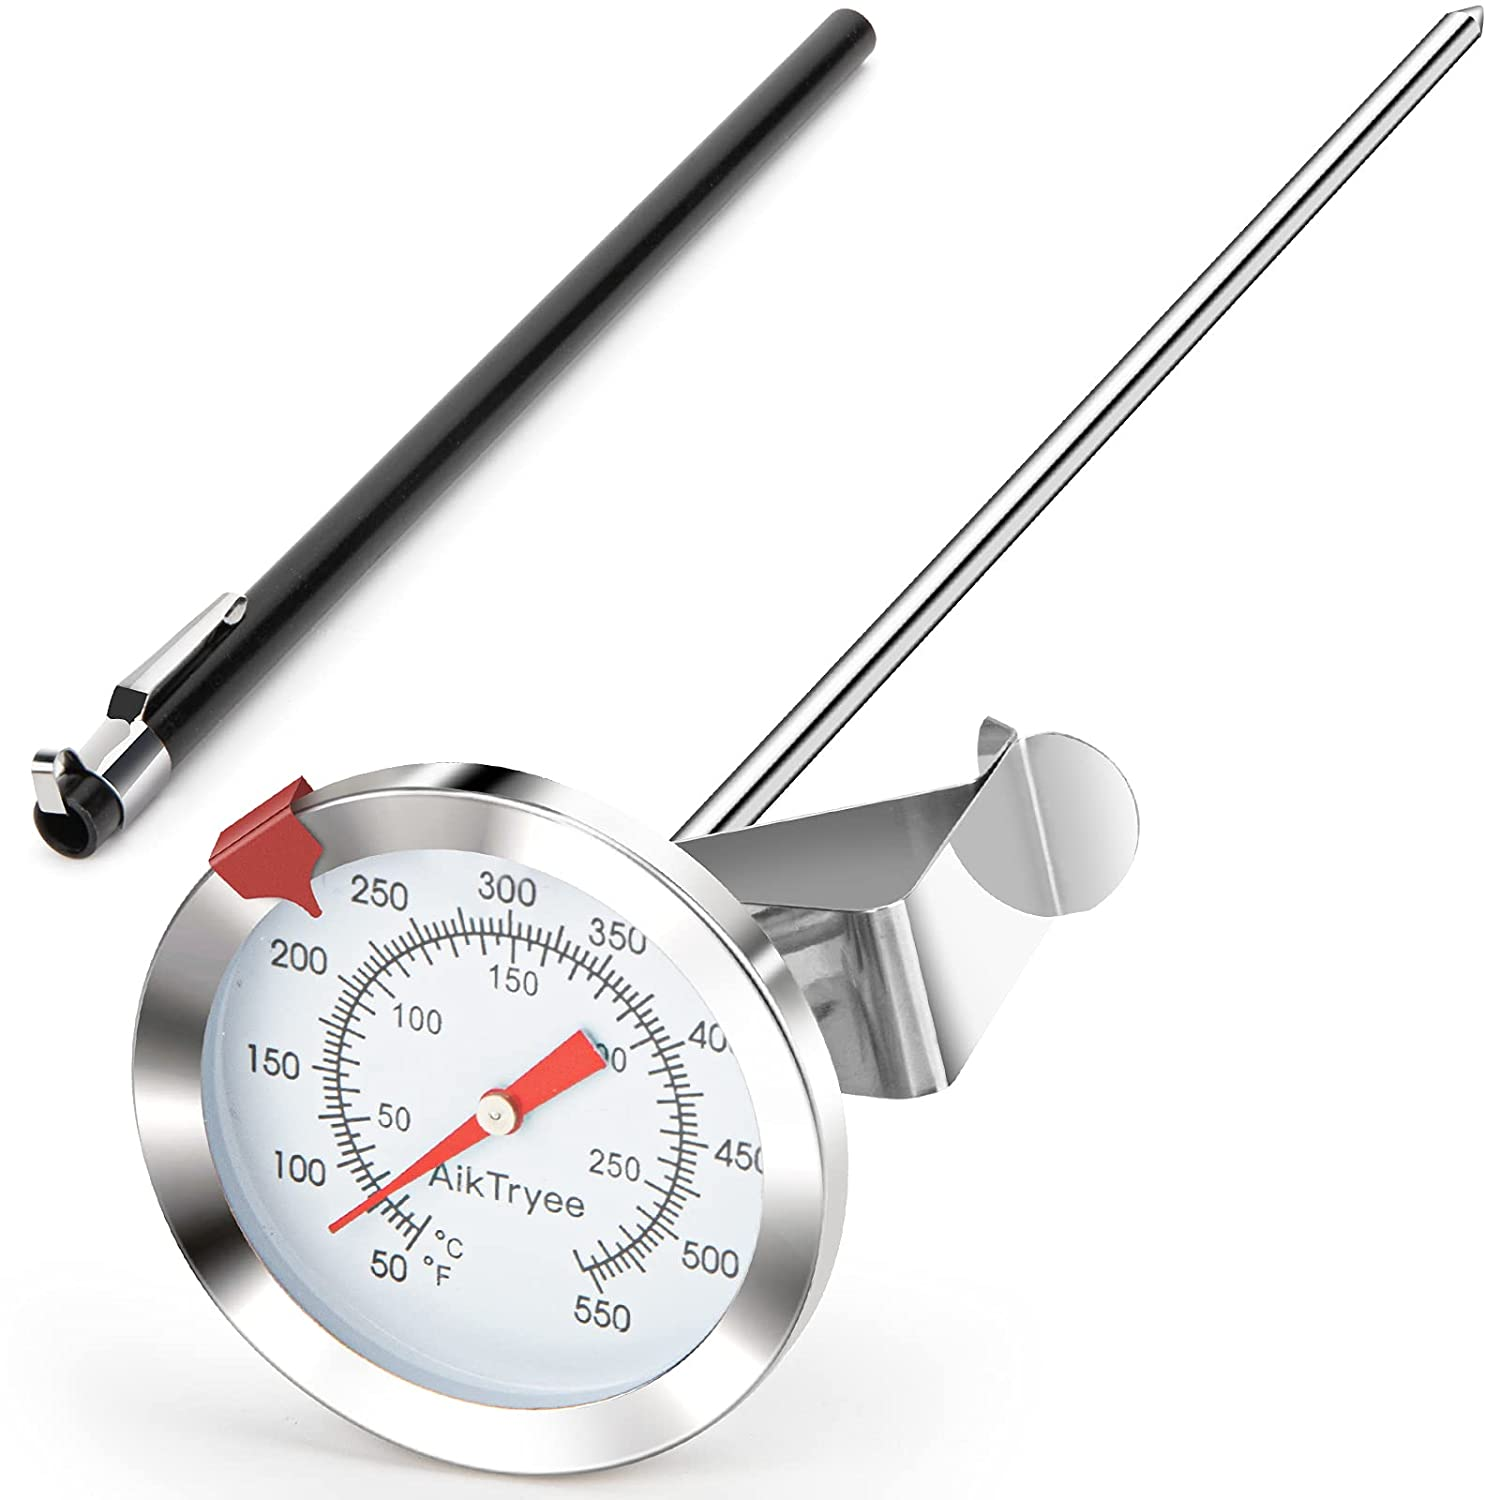 Food/Meat Instant Read Thermometer, Deep Fry Thermometer, Oven Thermometer with Dial Thermometer(10-290?/50-550?)for Turkey BBQ Grill Oil by AikTryee